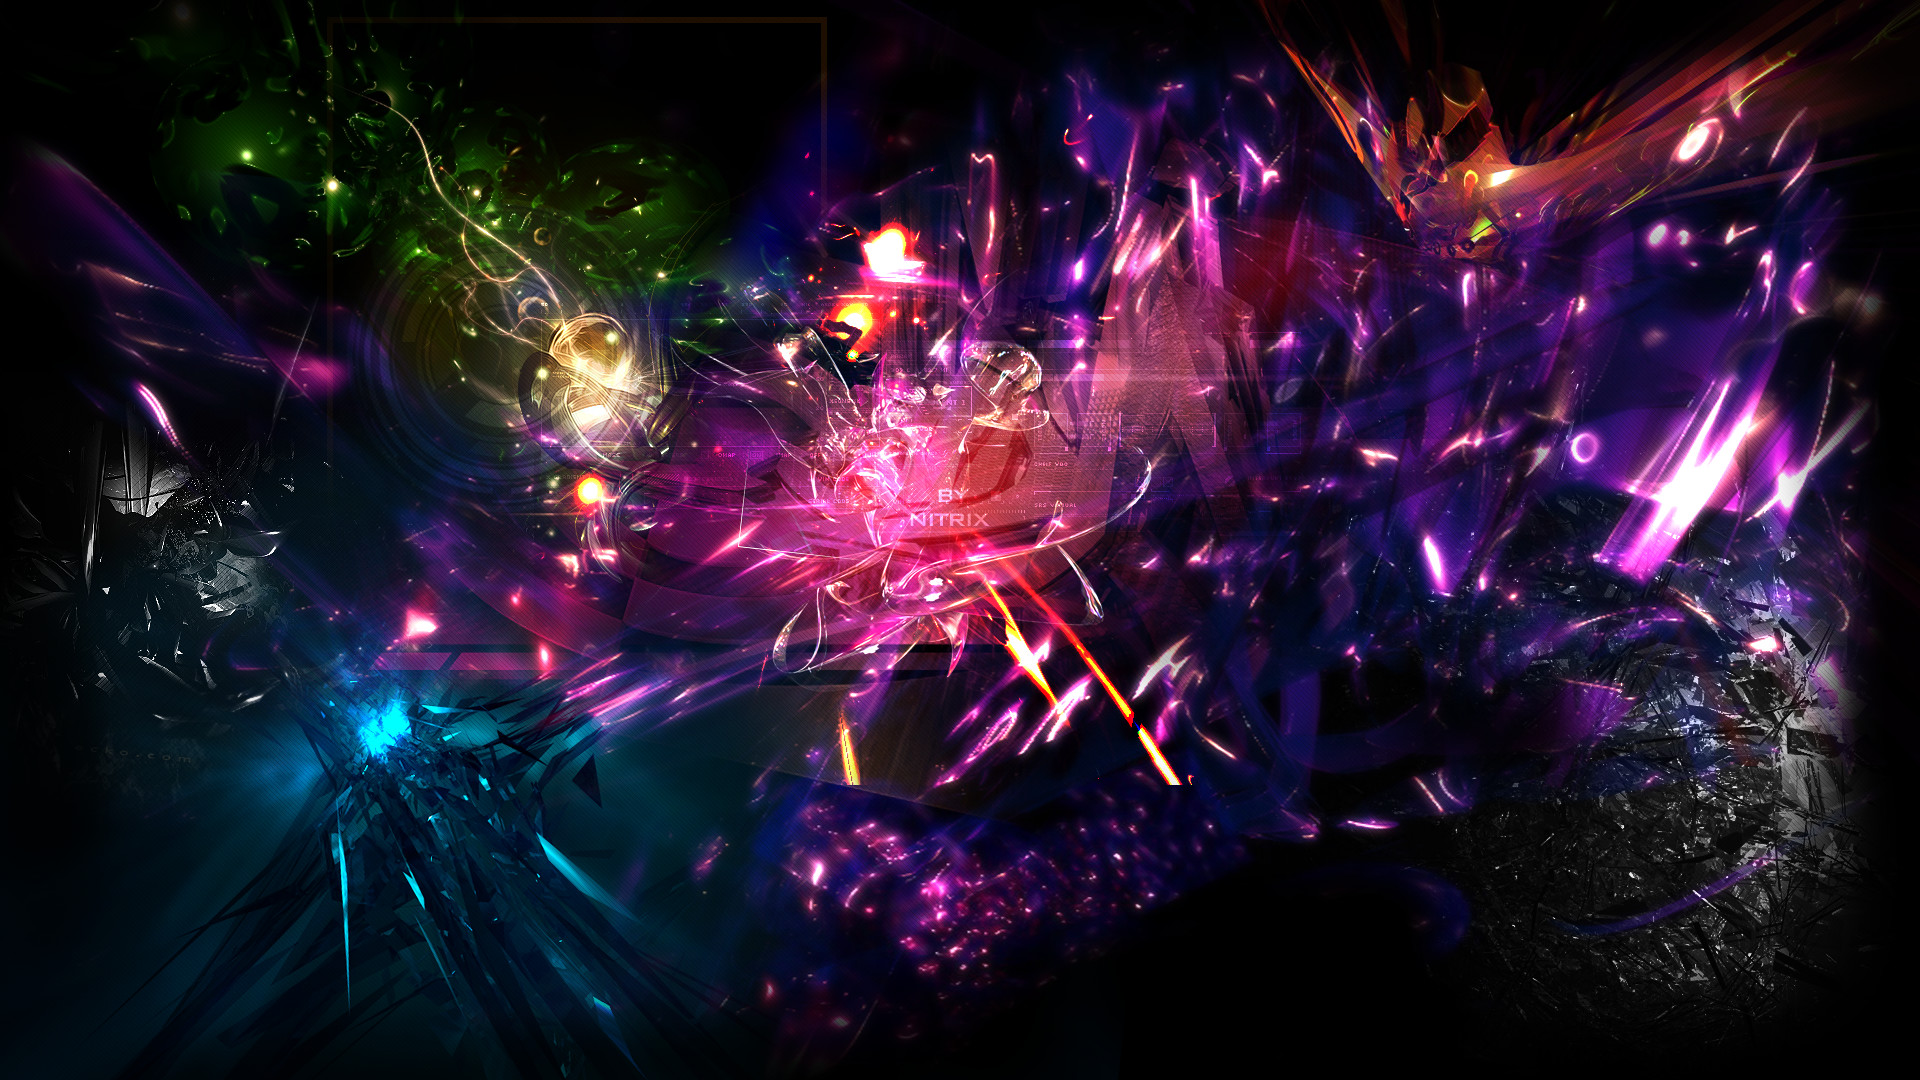 … Space Abstract Wallpaper (Color Version) by nitr1x